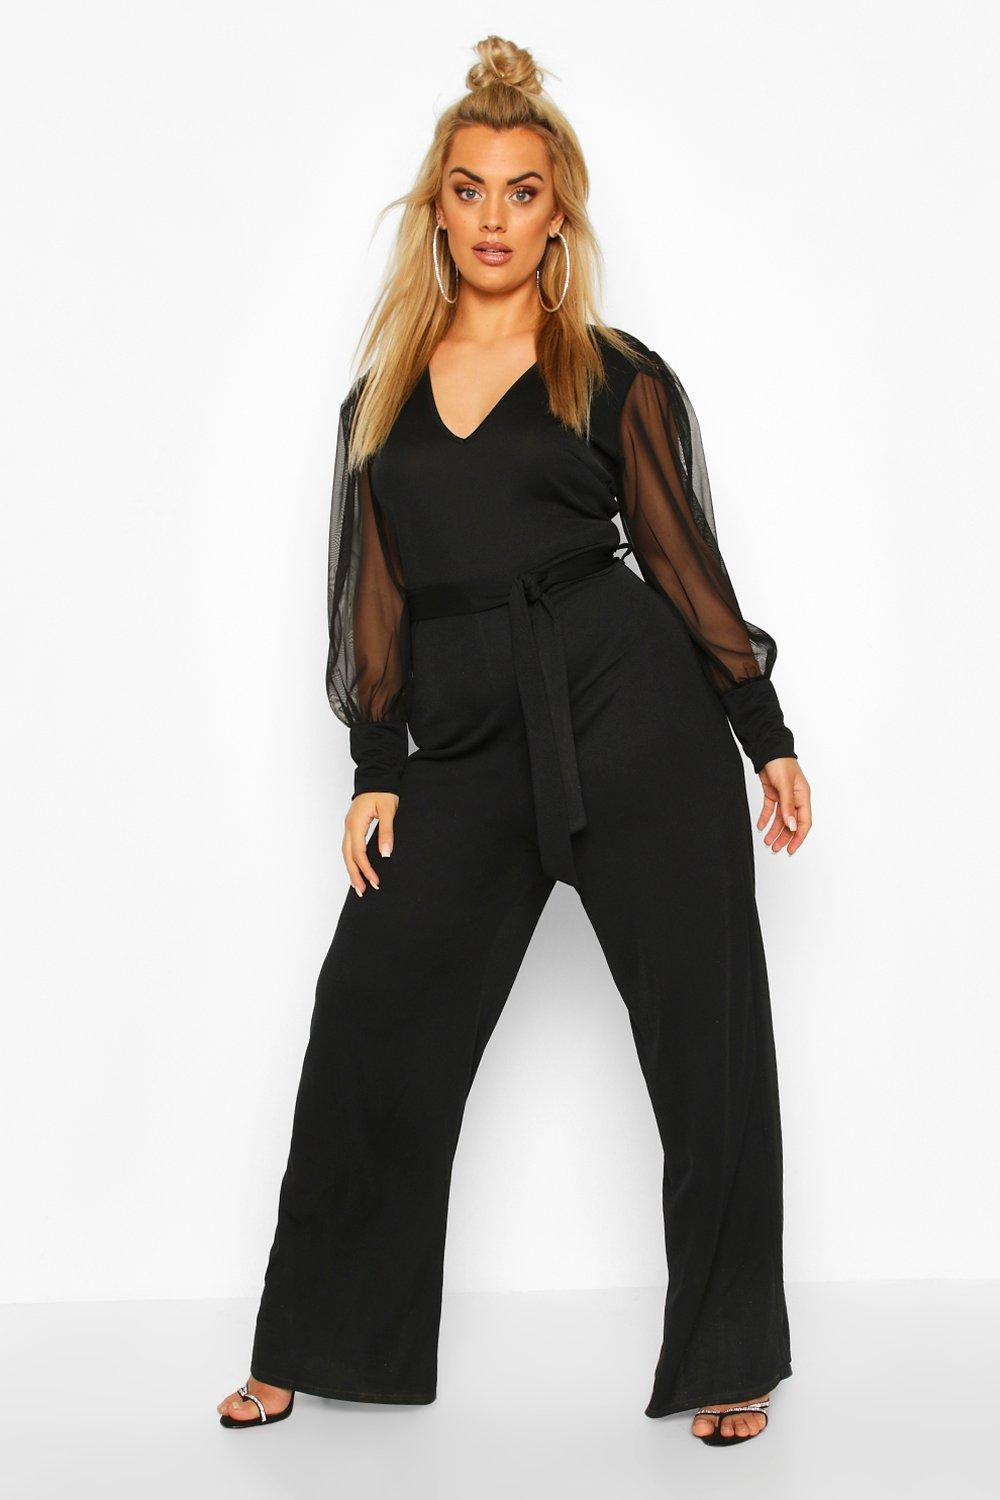 boohoo Womens Plus Plunge Organza Sleeve Wide Leg Jumpsuit - Black - 20, Black